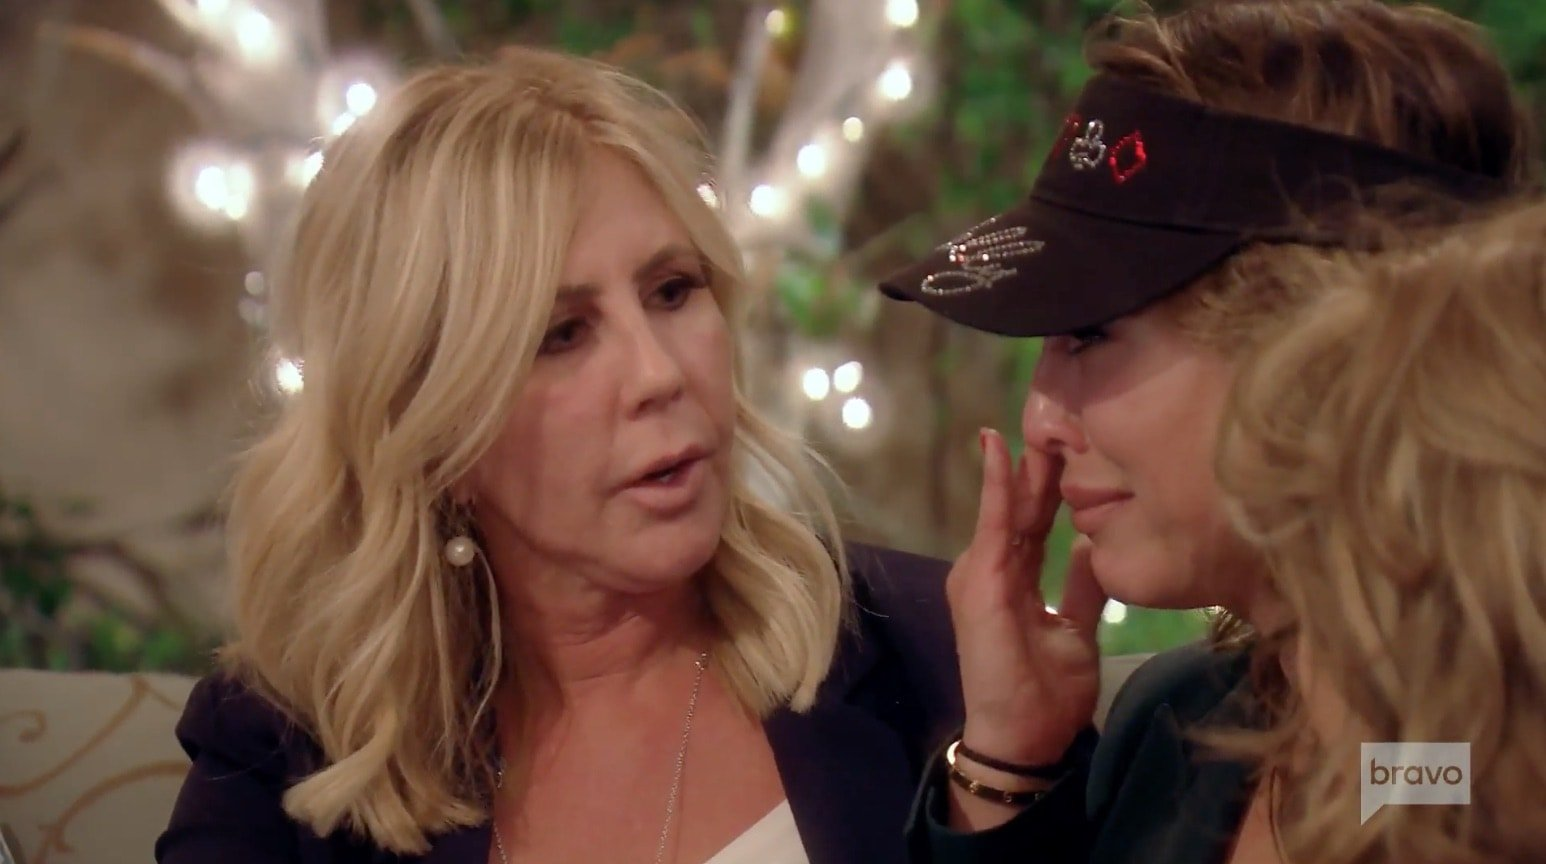 Vicki apologizes to Kelly Again